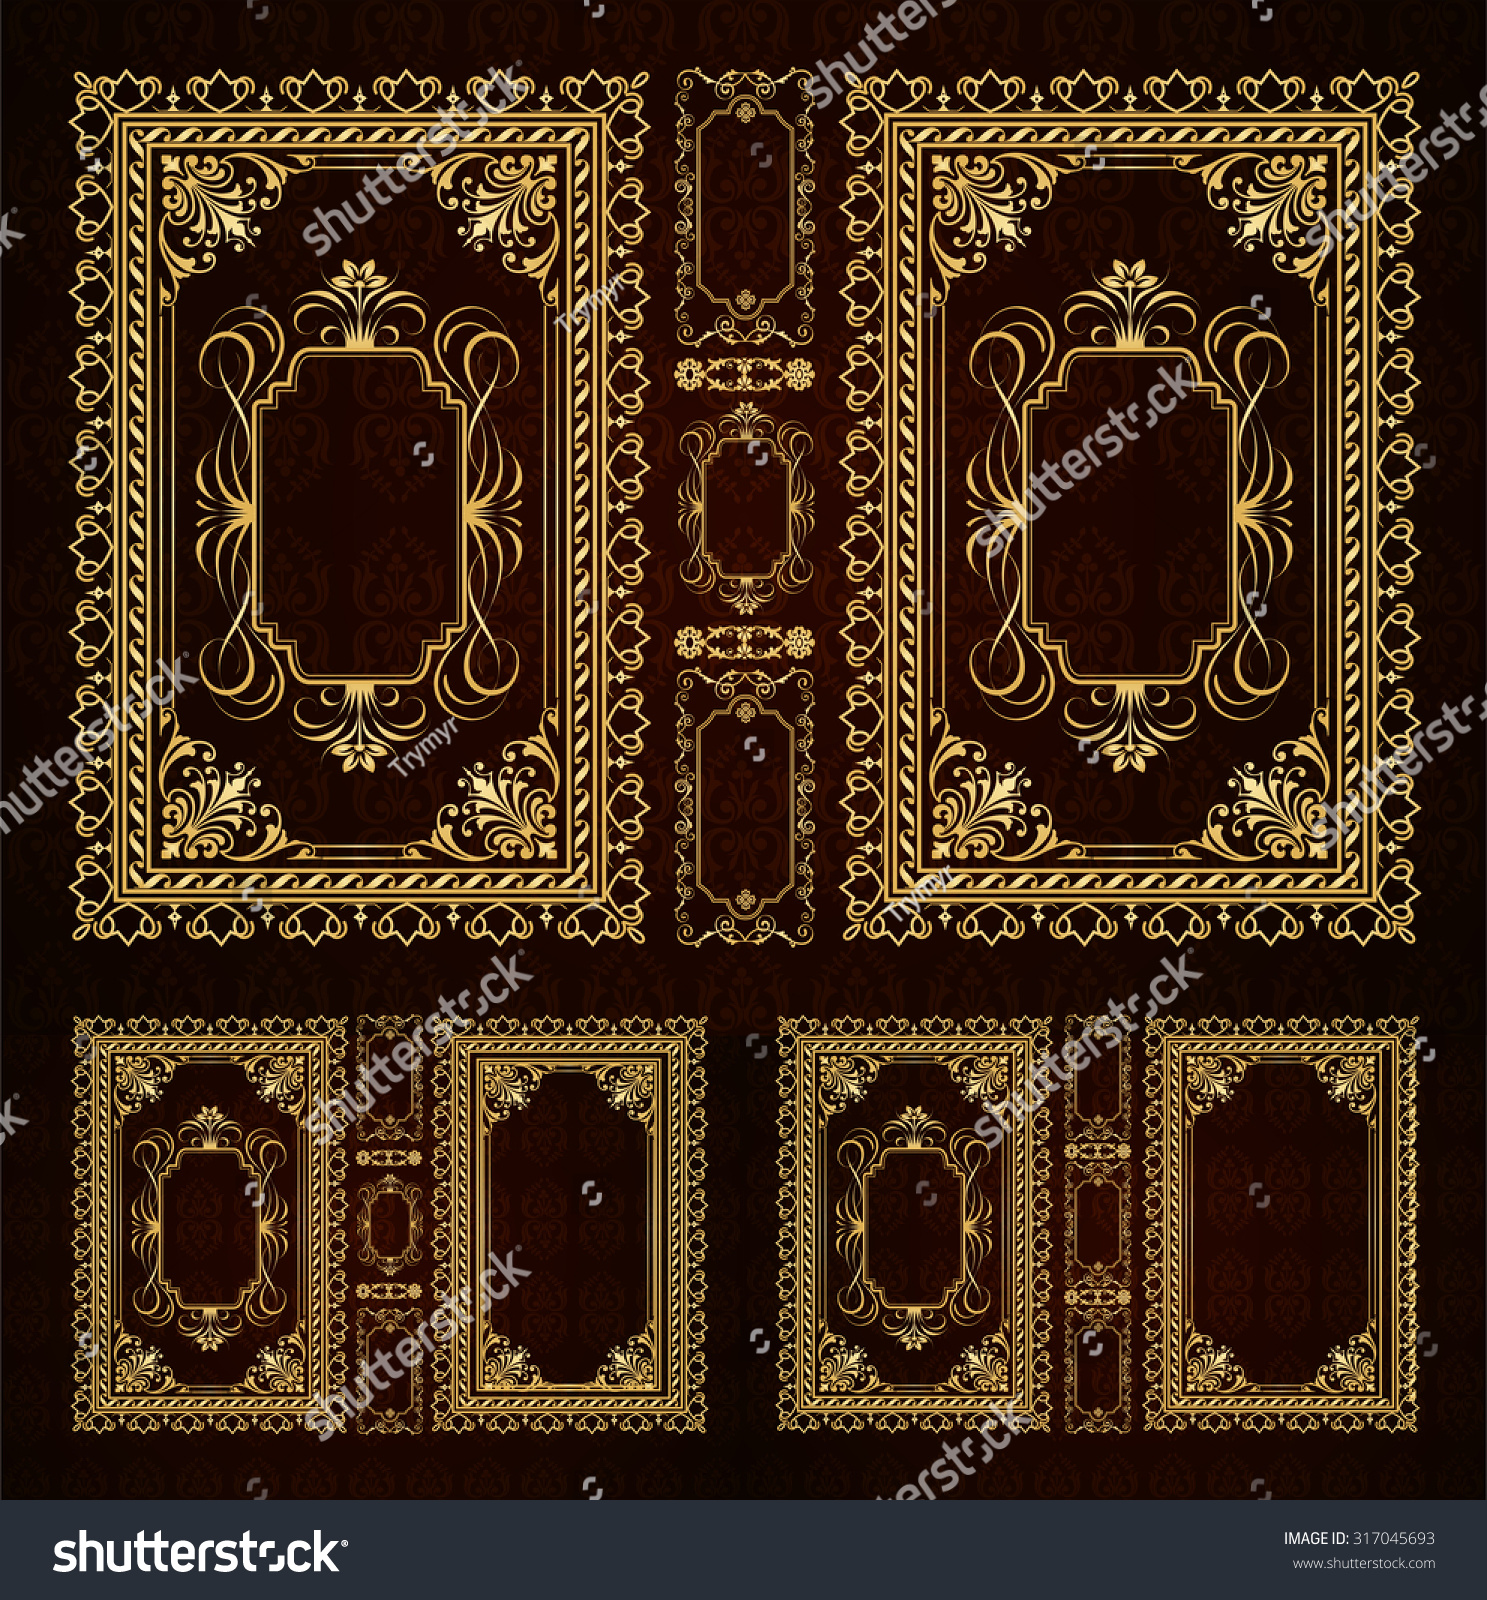 Vintage Decorative Book Cover : Vector classical book cover decorative vintage stock